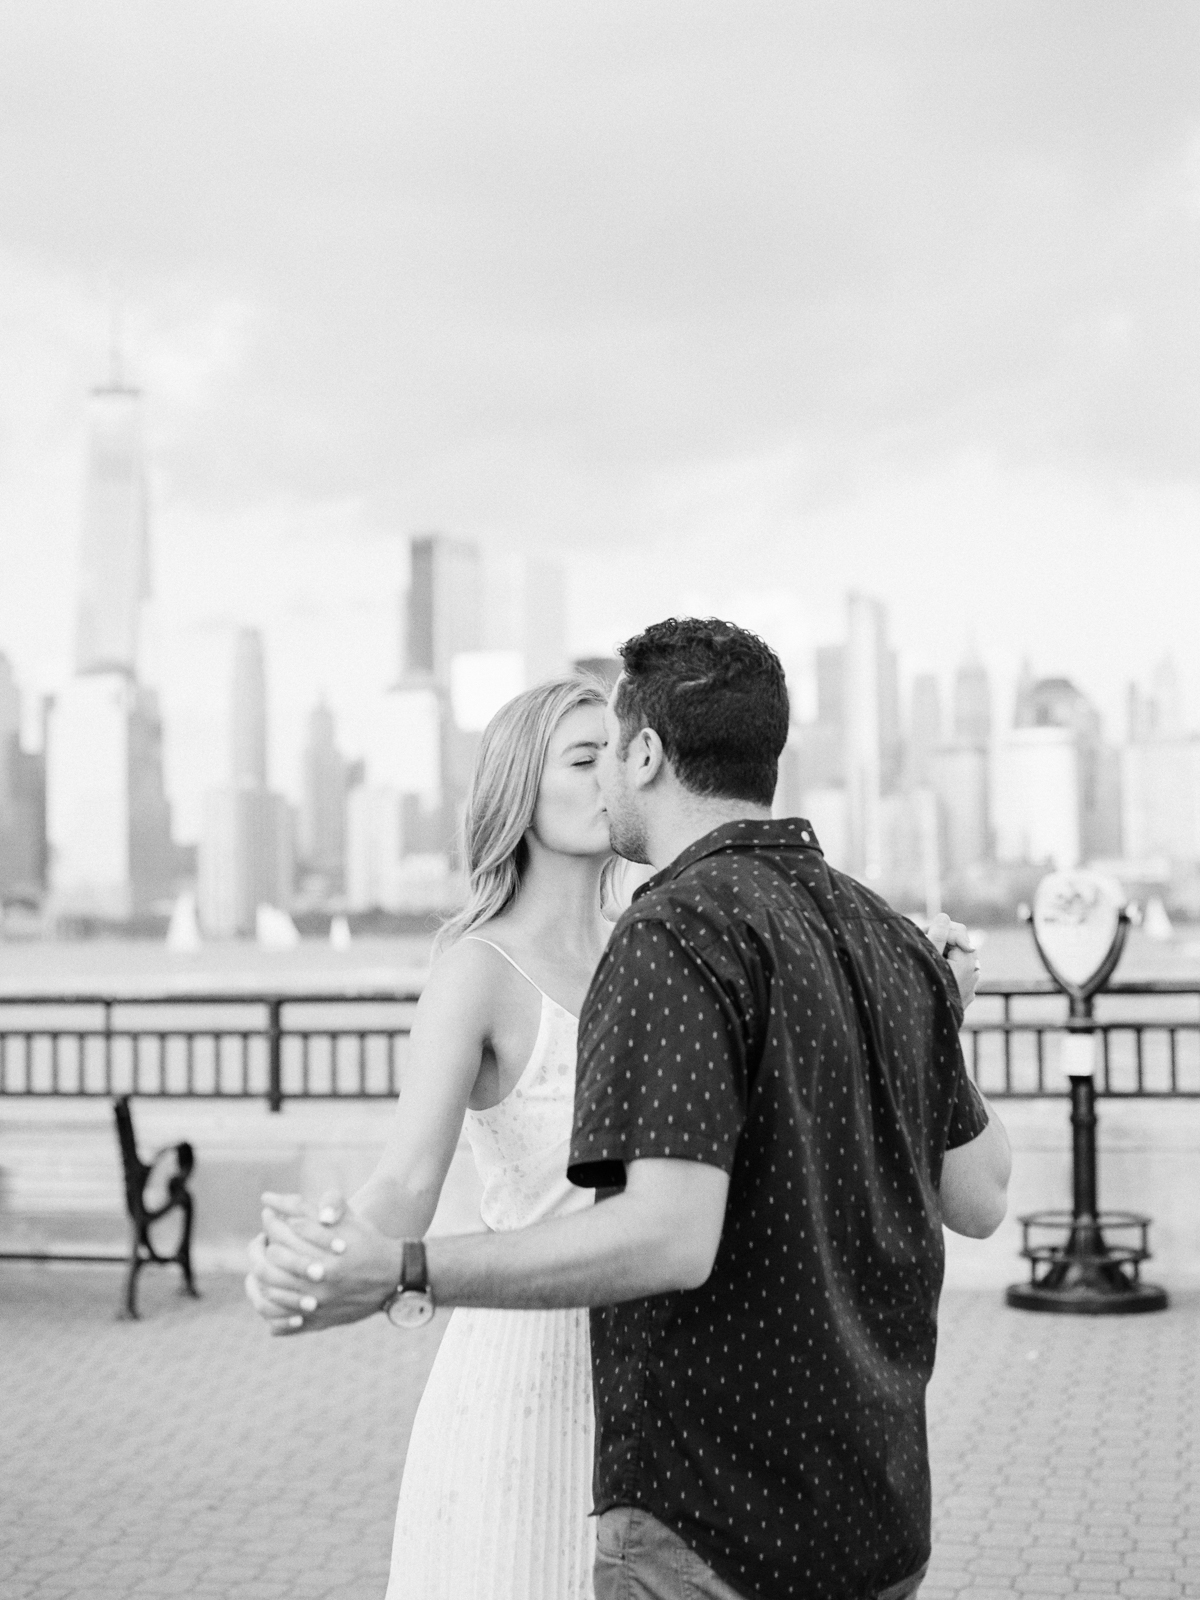 NYC-skyline-engagement-session-by-Tanya Isaeva-35.jpg